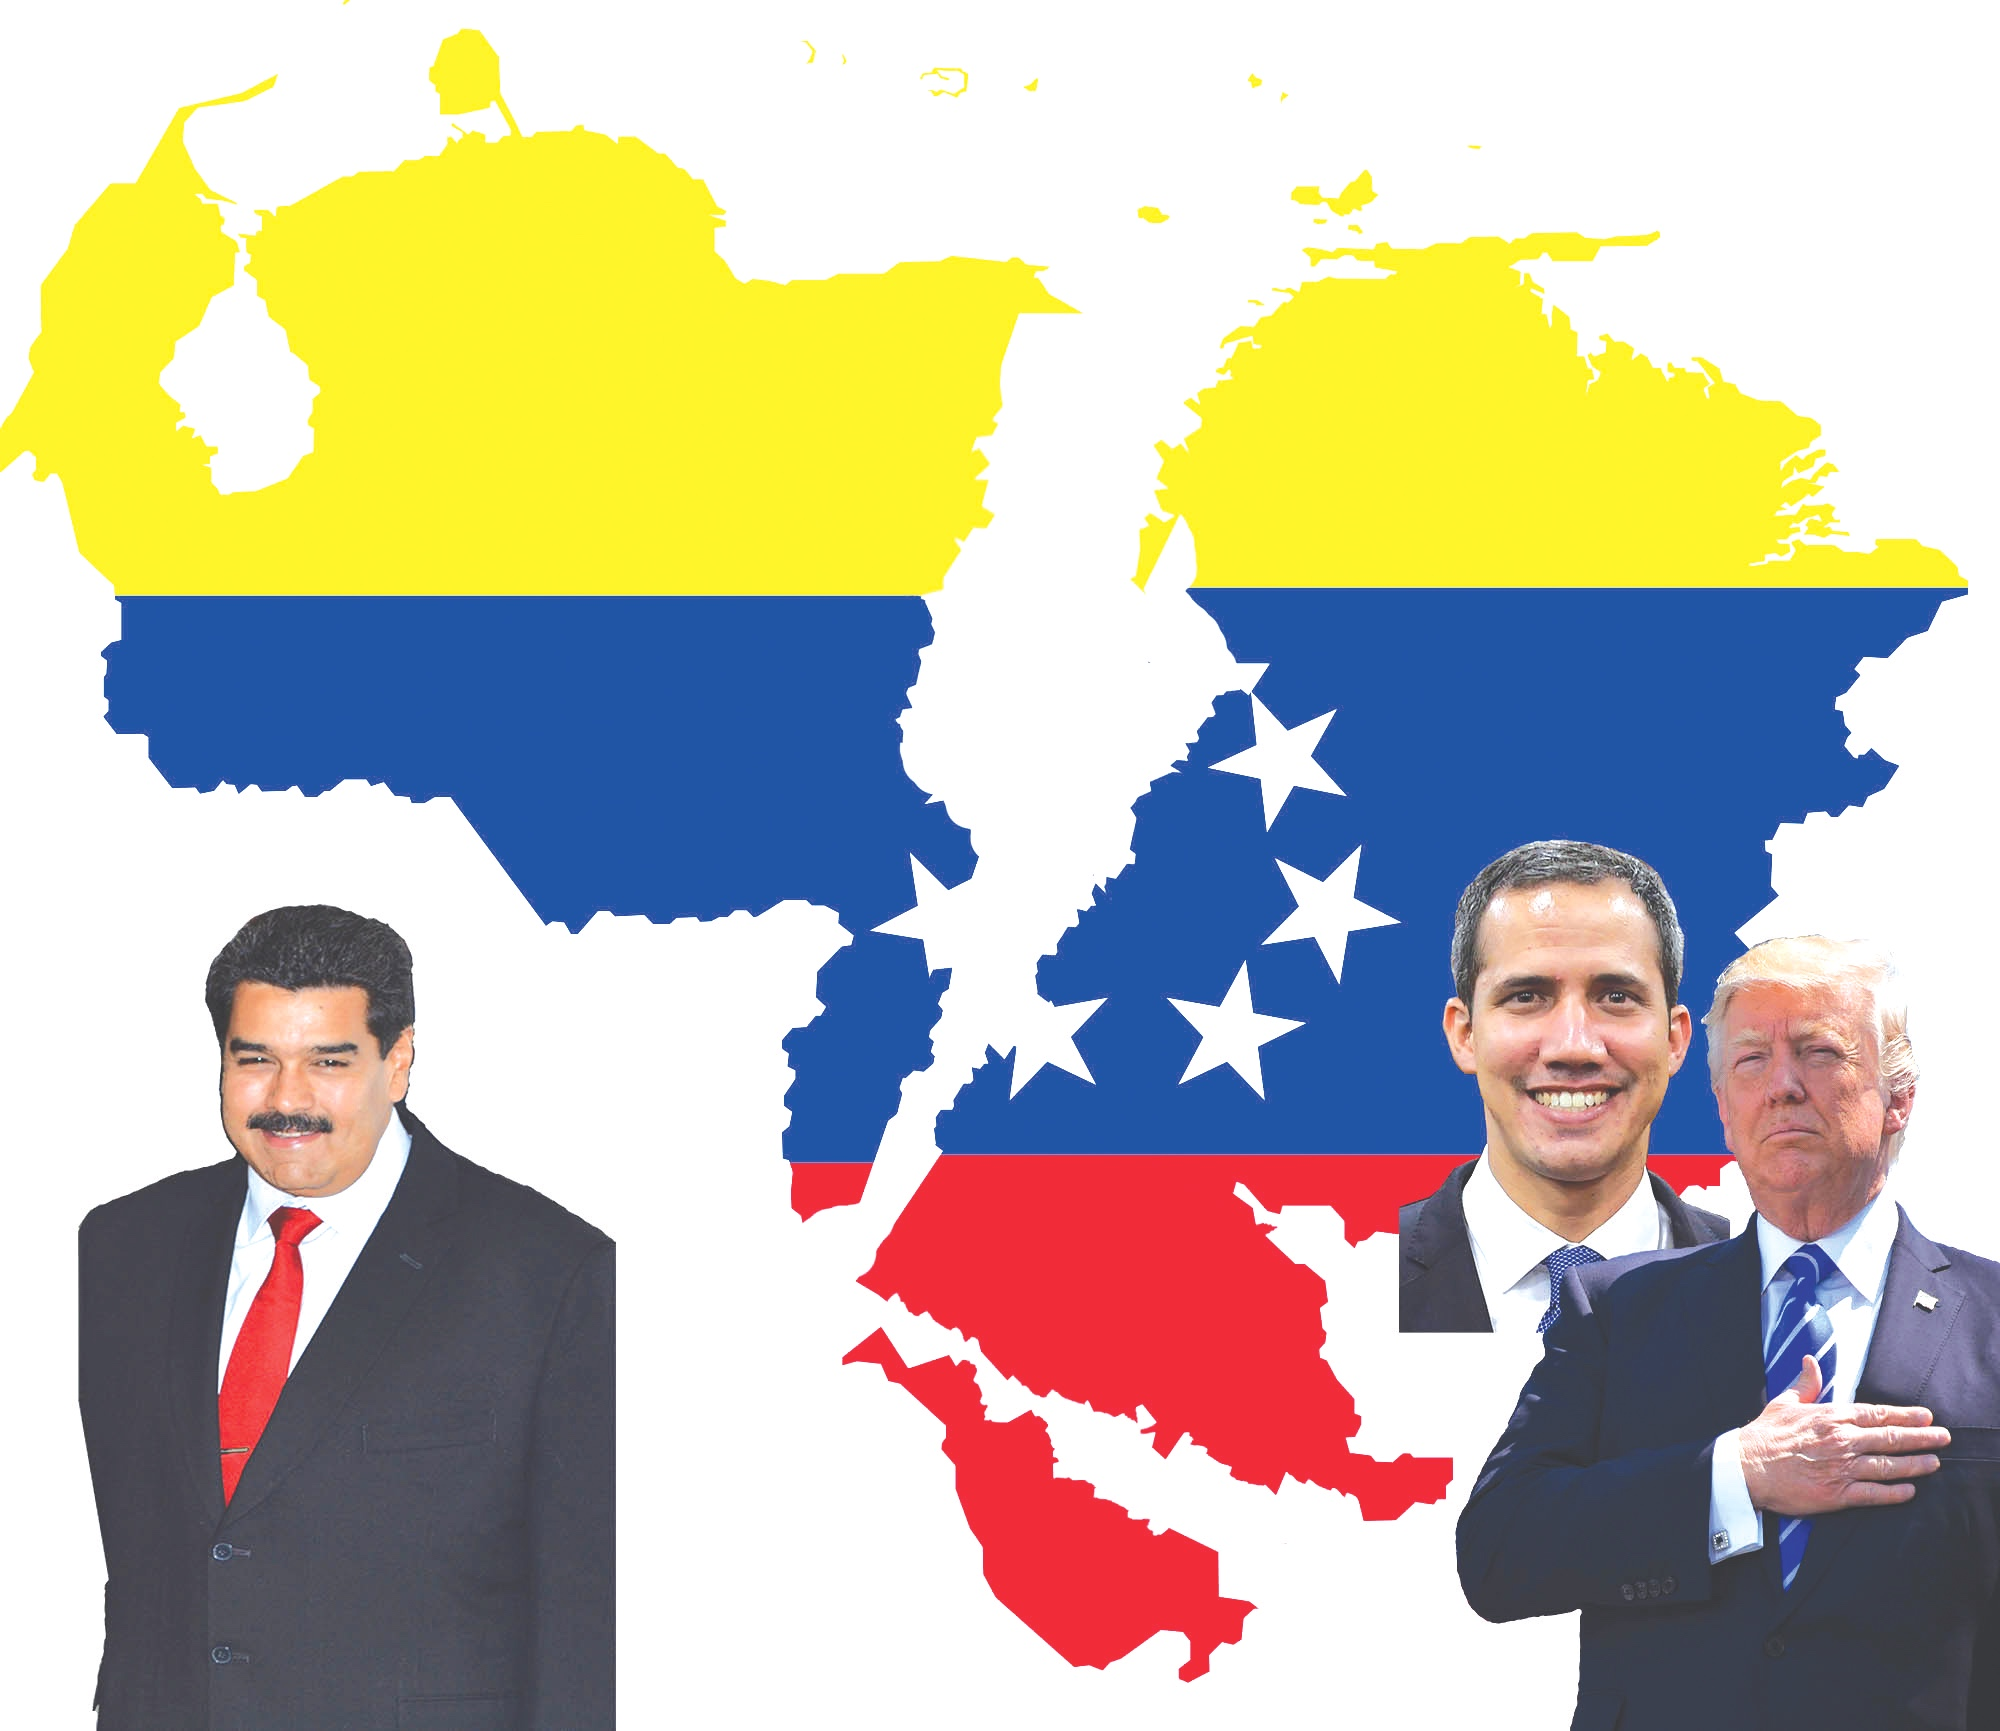 Illustration of Venezuela's President Nicolás Maduro, Opposition leader Juan Guaido, and U.S. President Donald Trump amongst a divided Venezuela. (Illustration by Conner Savage)